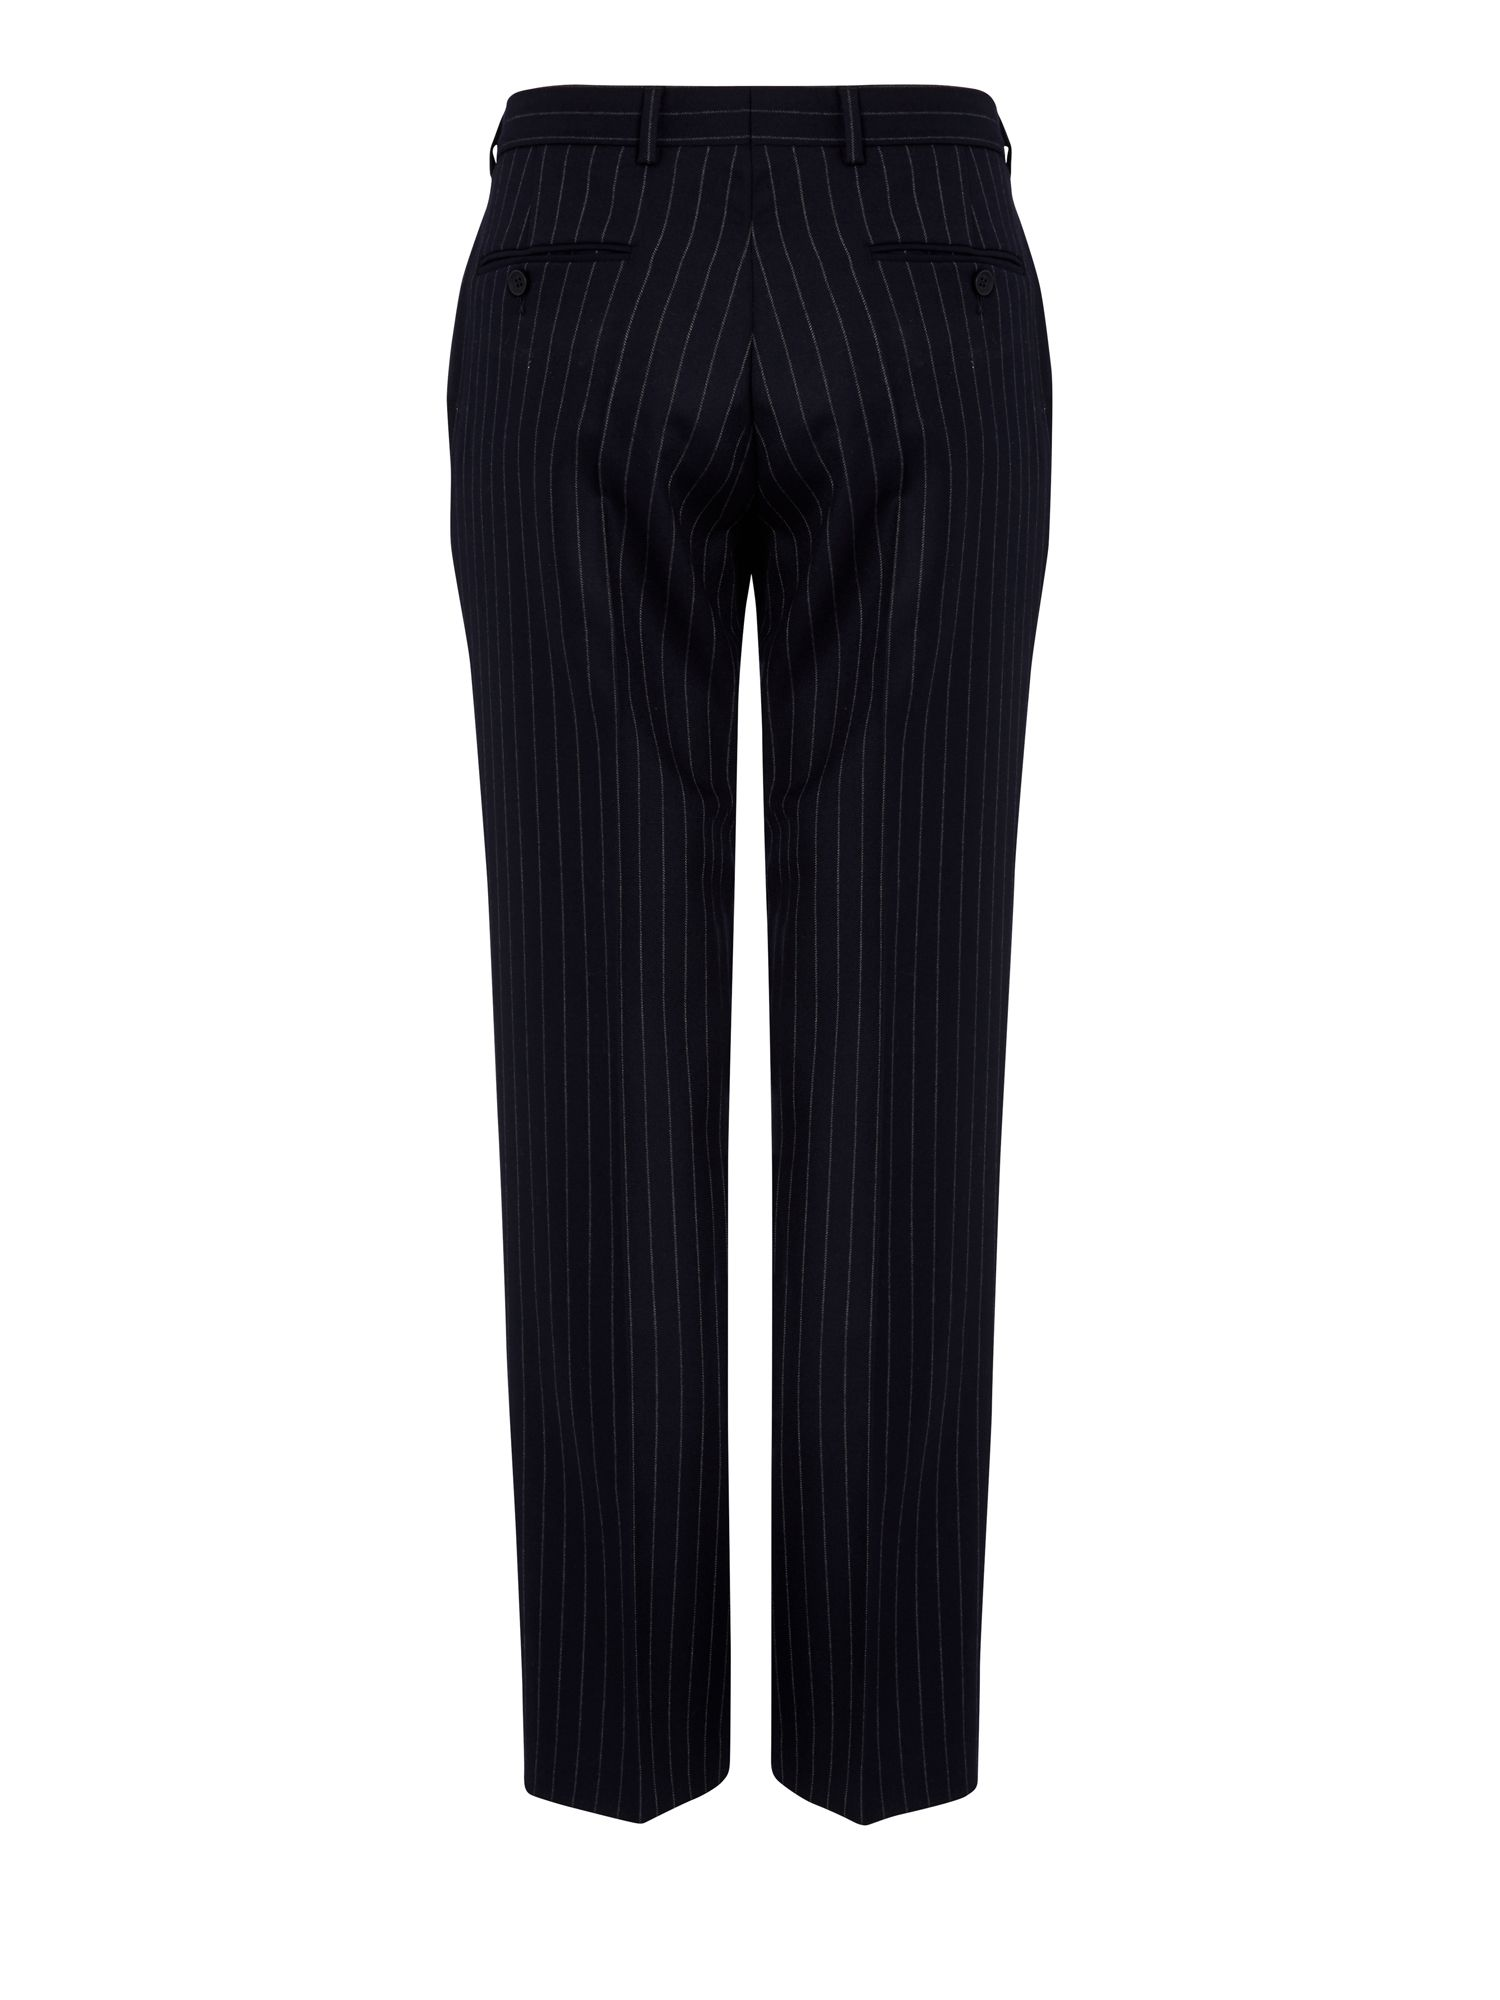 Stripe trouser